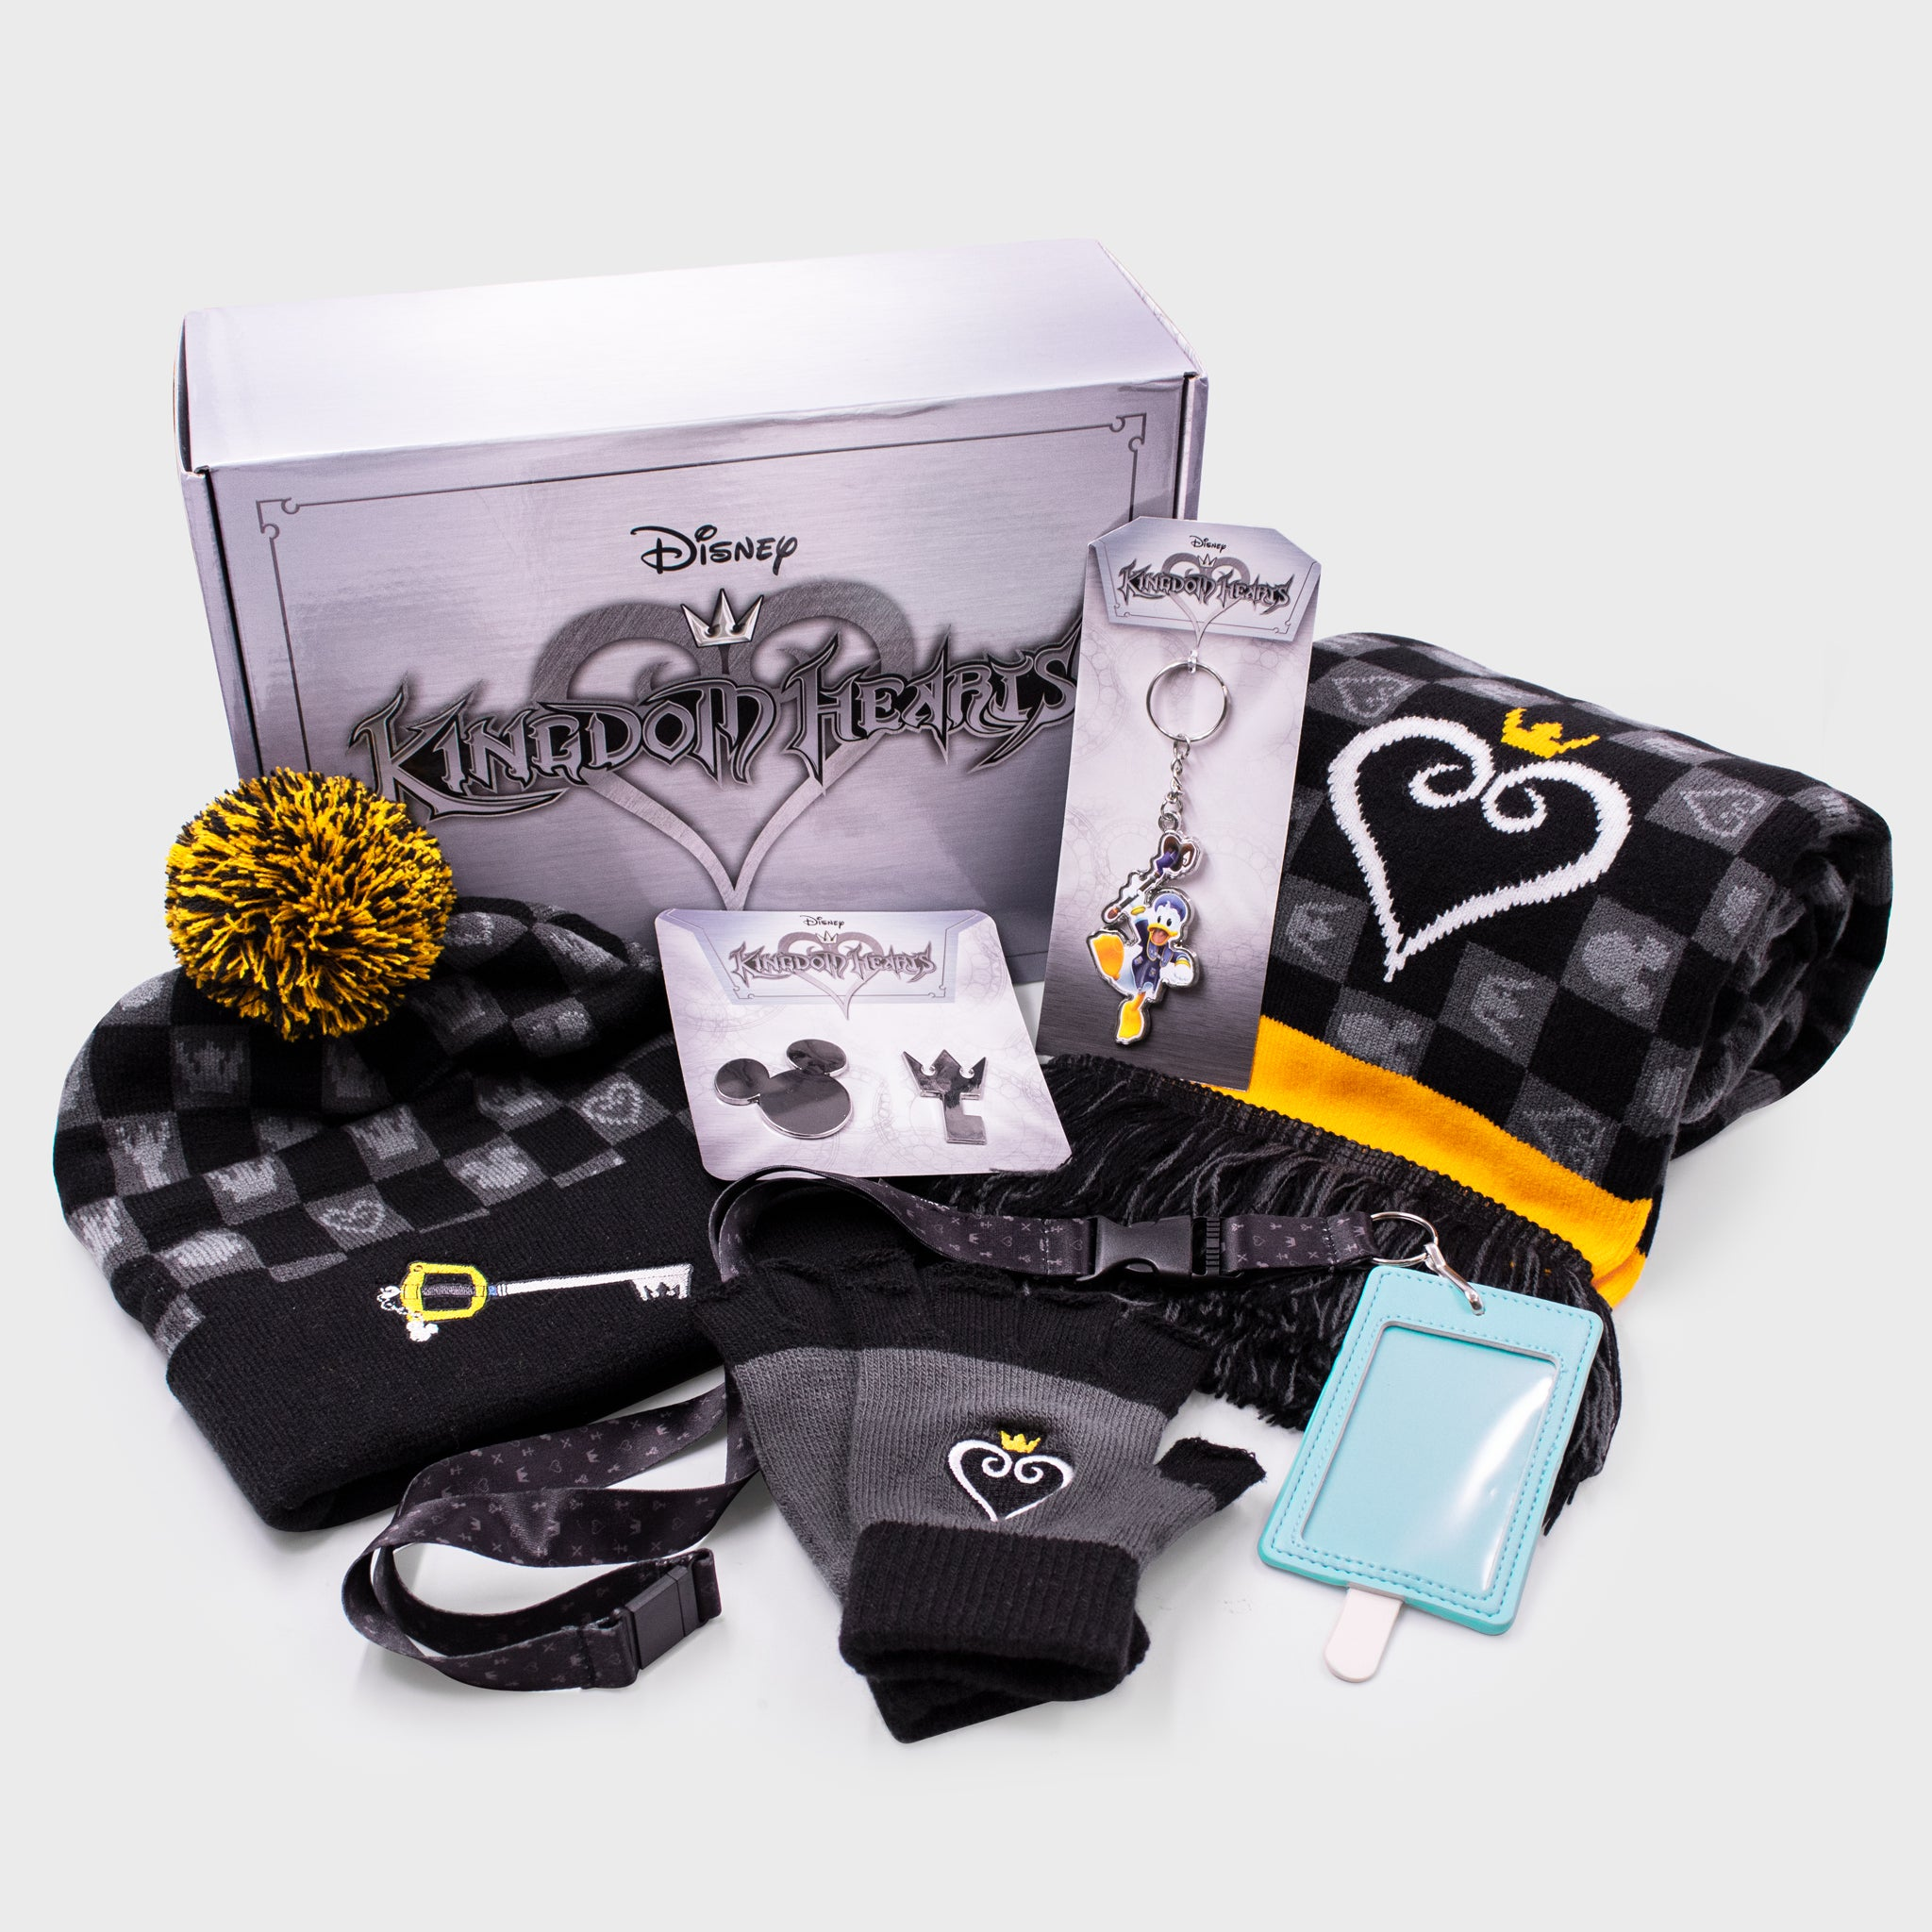 kingdom hearts disney square enix gaming video game collector box accessories exclusive collectible beanie hat gloves keychain lanyard enamel pins scarf winter cold culturefly